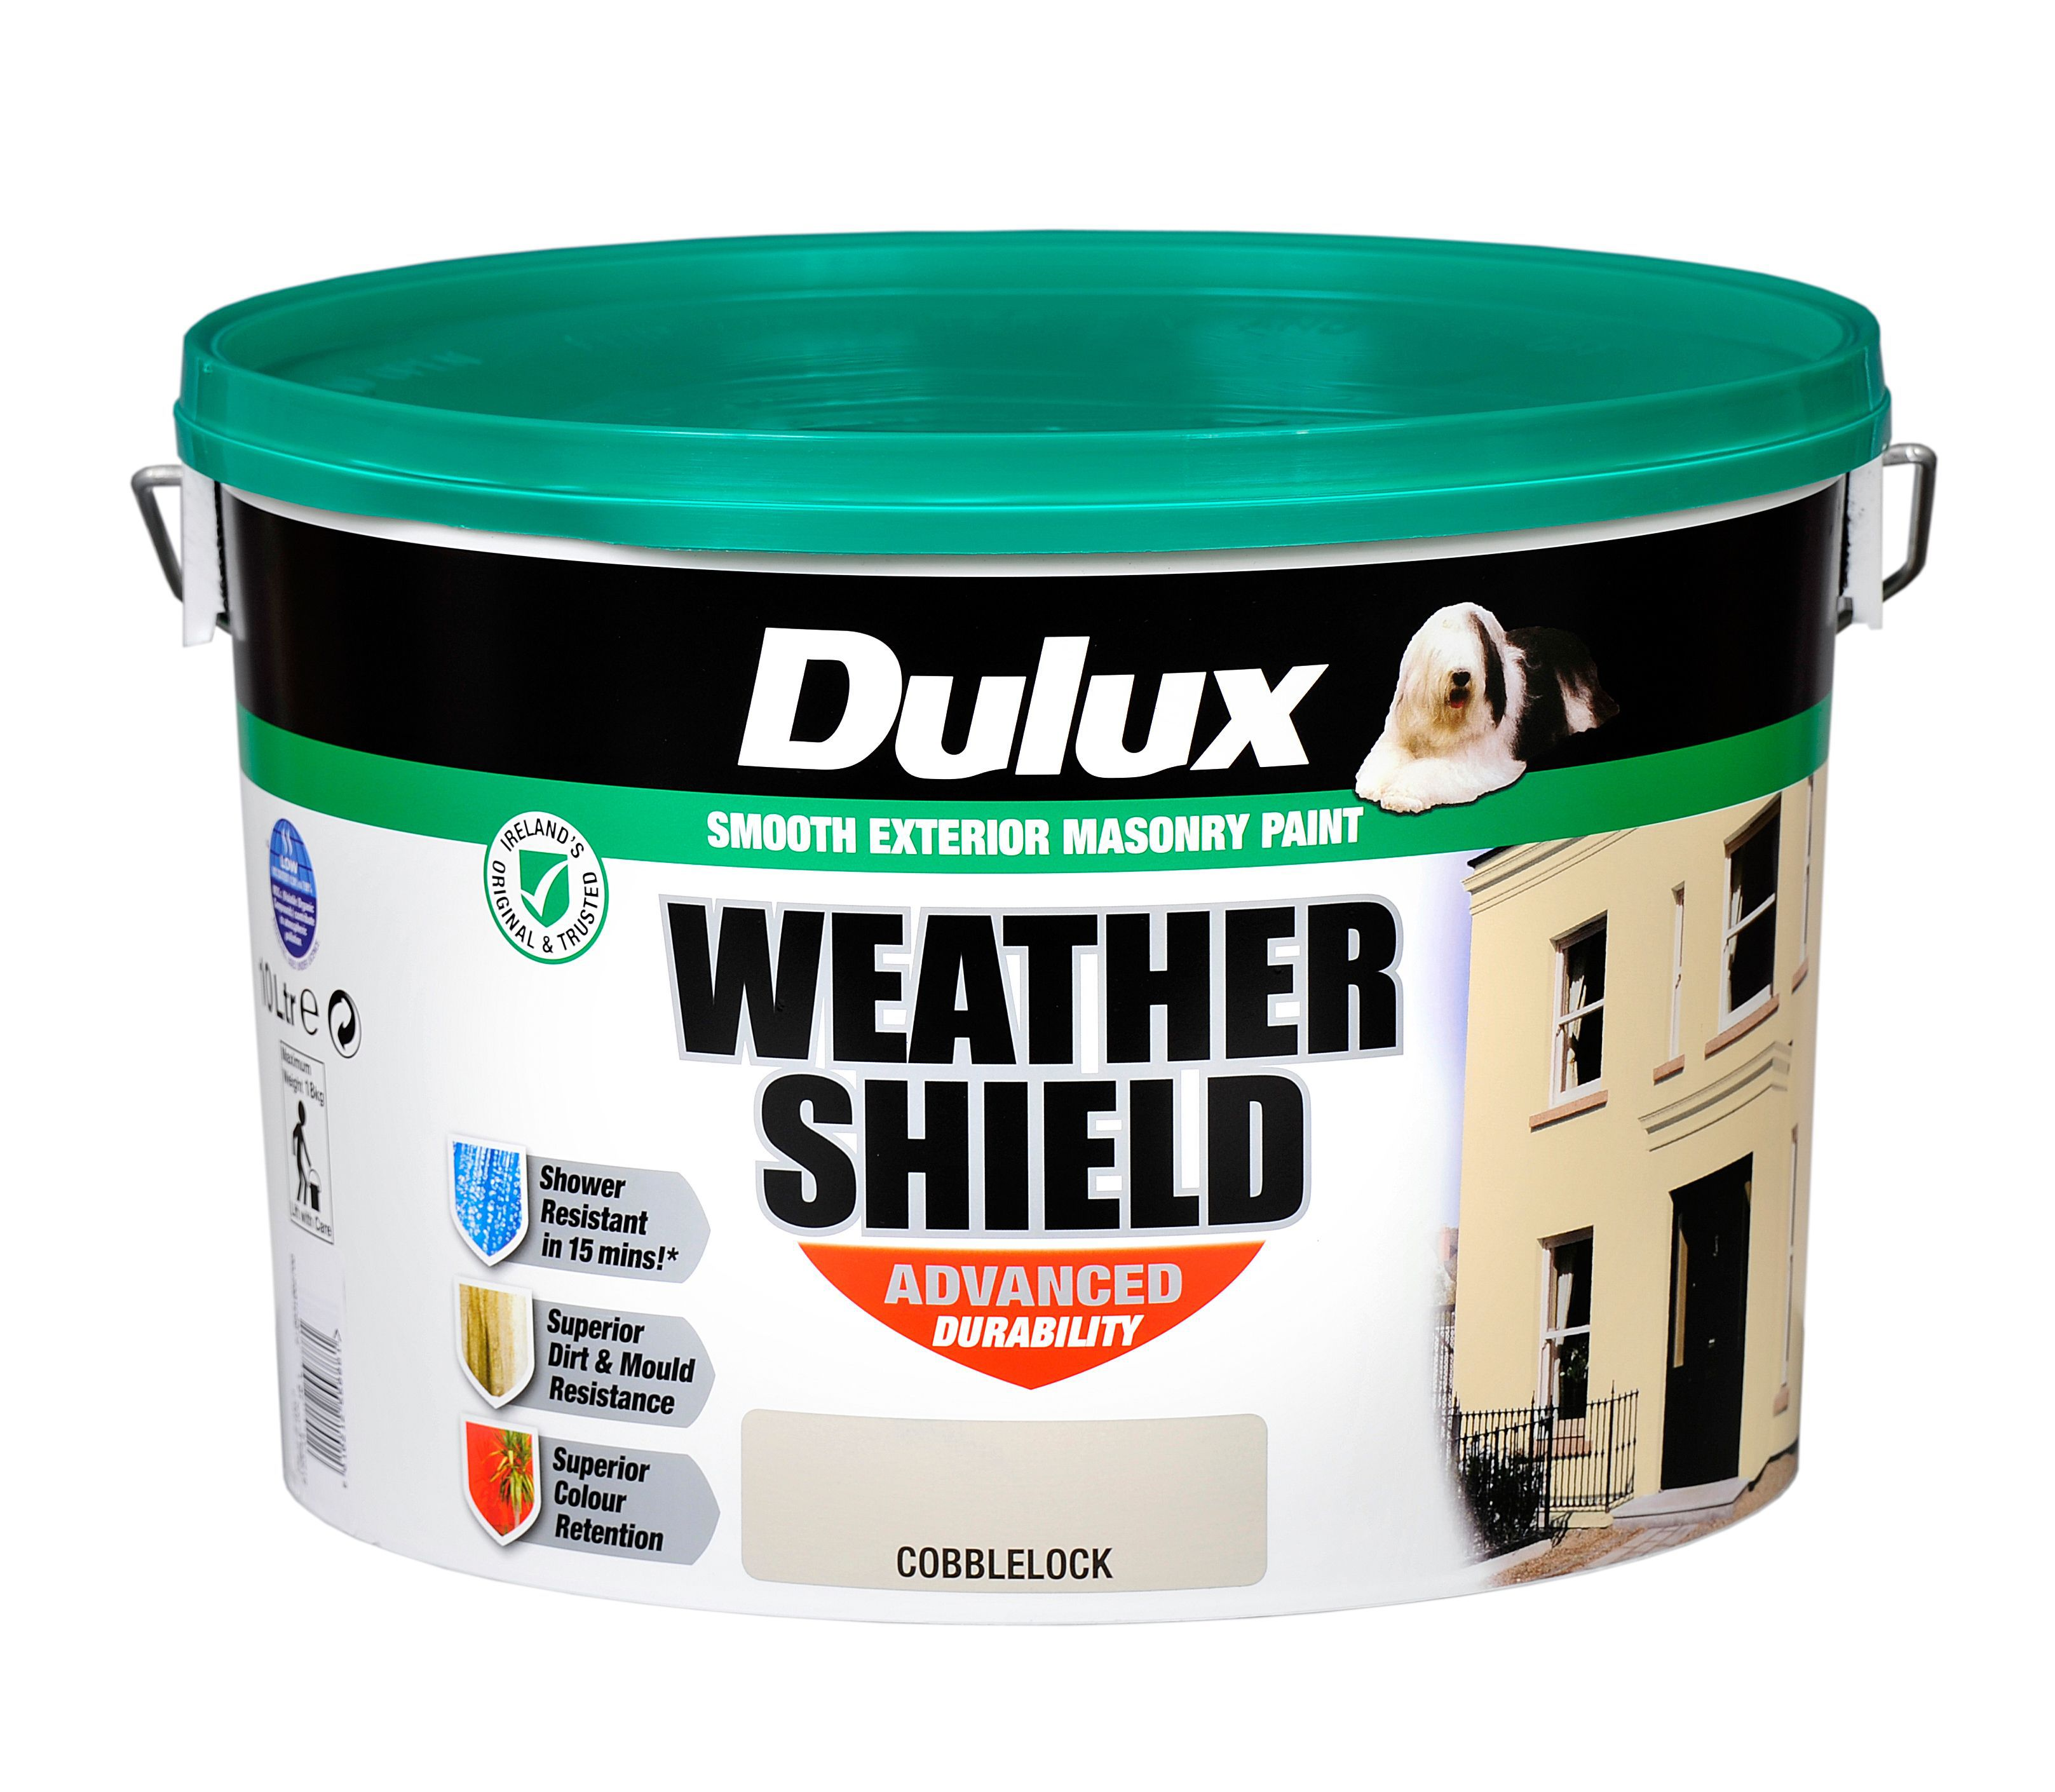 Dulux Weathershield Cobblelock Matt Masonry Paint 10l Plastic Container Departments Diy At B Q